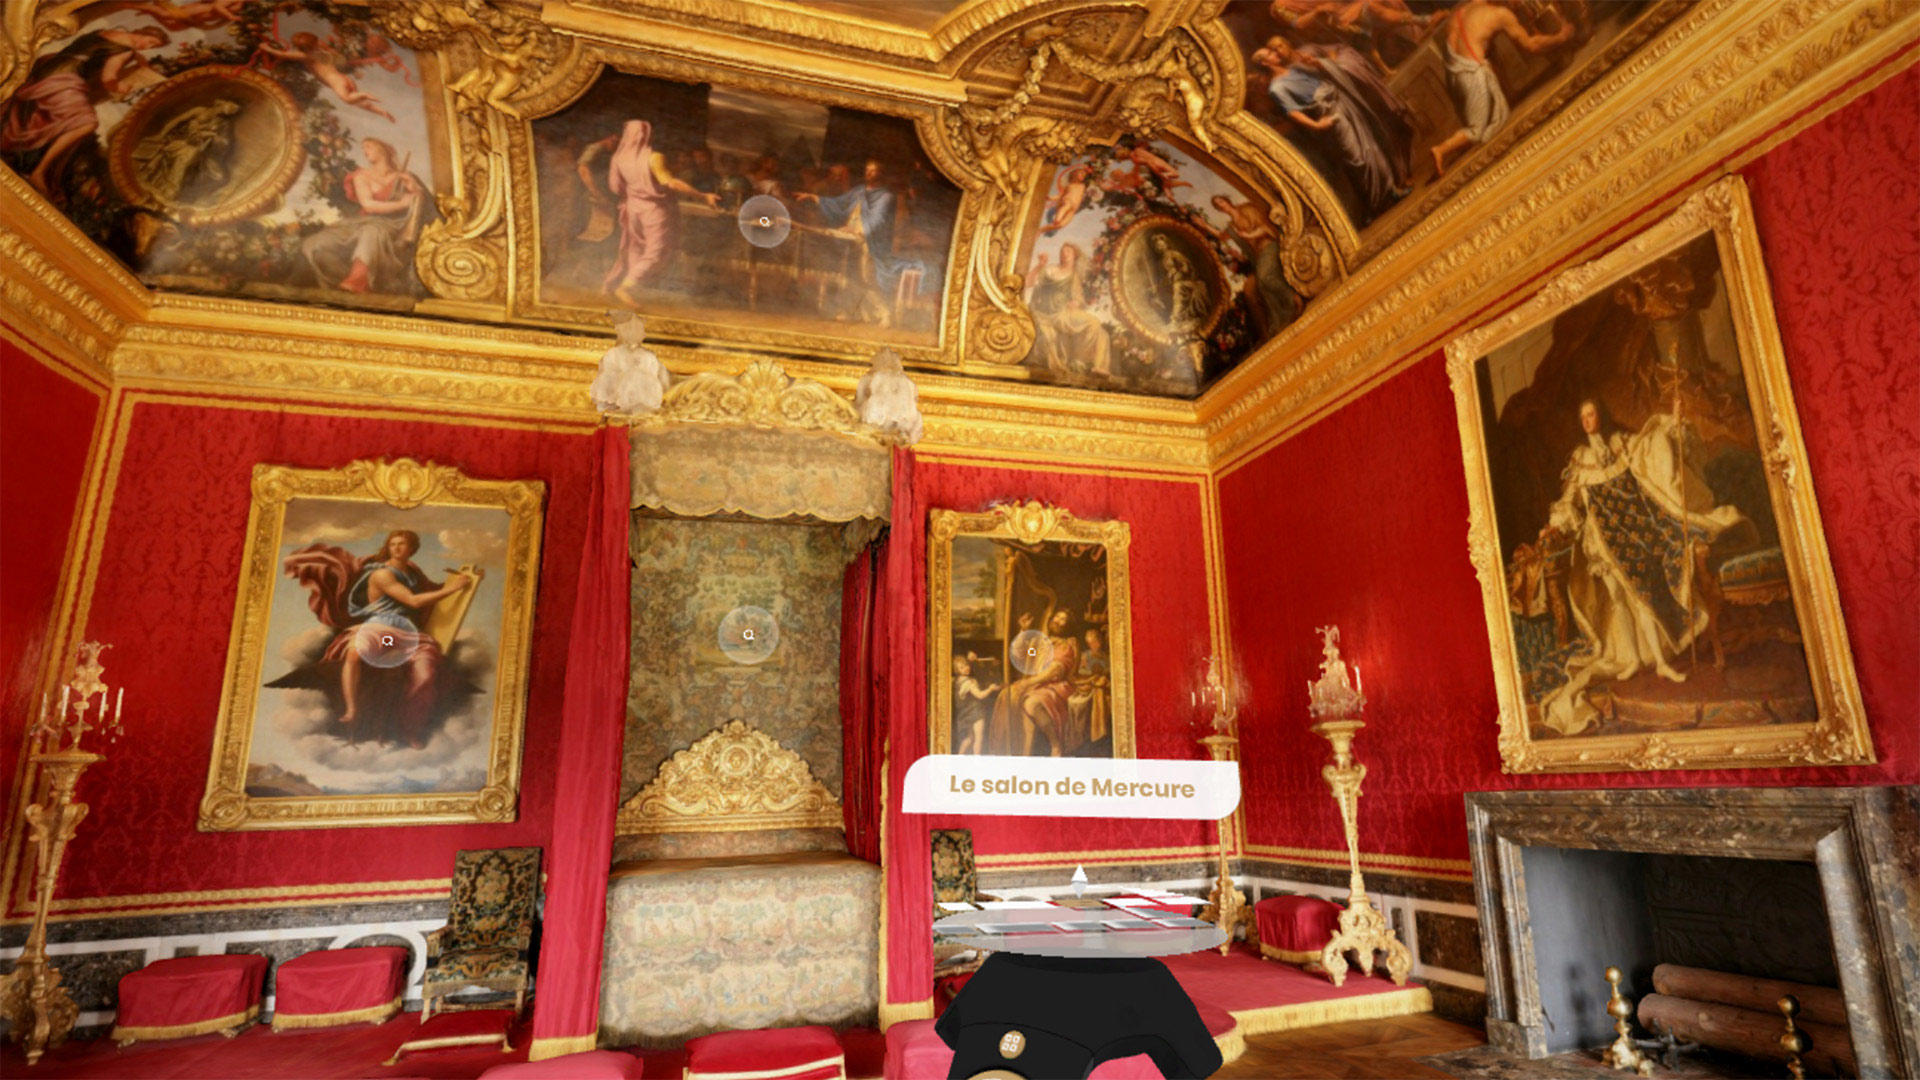 vr tour gratis Palace of Versailles